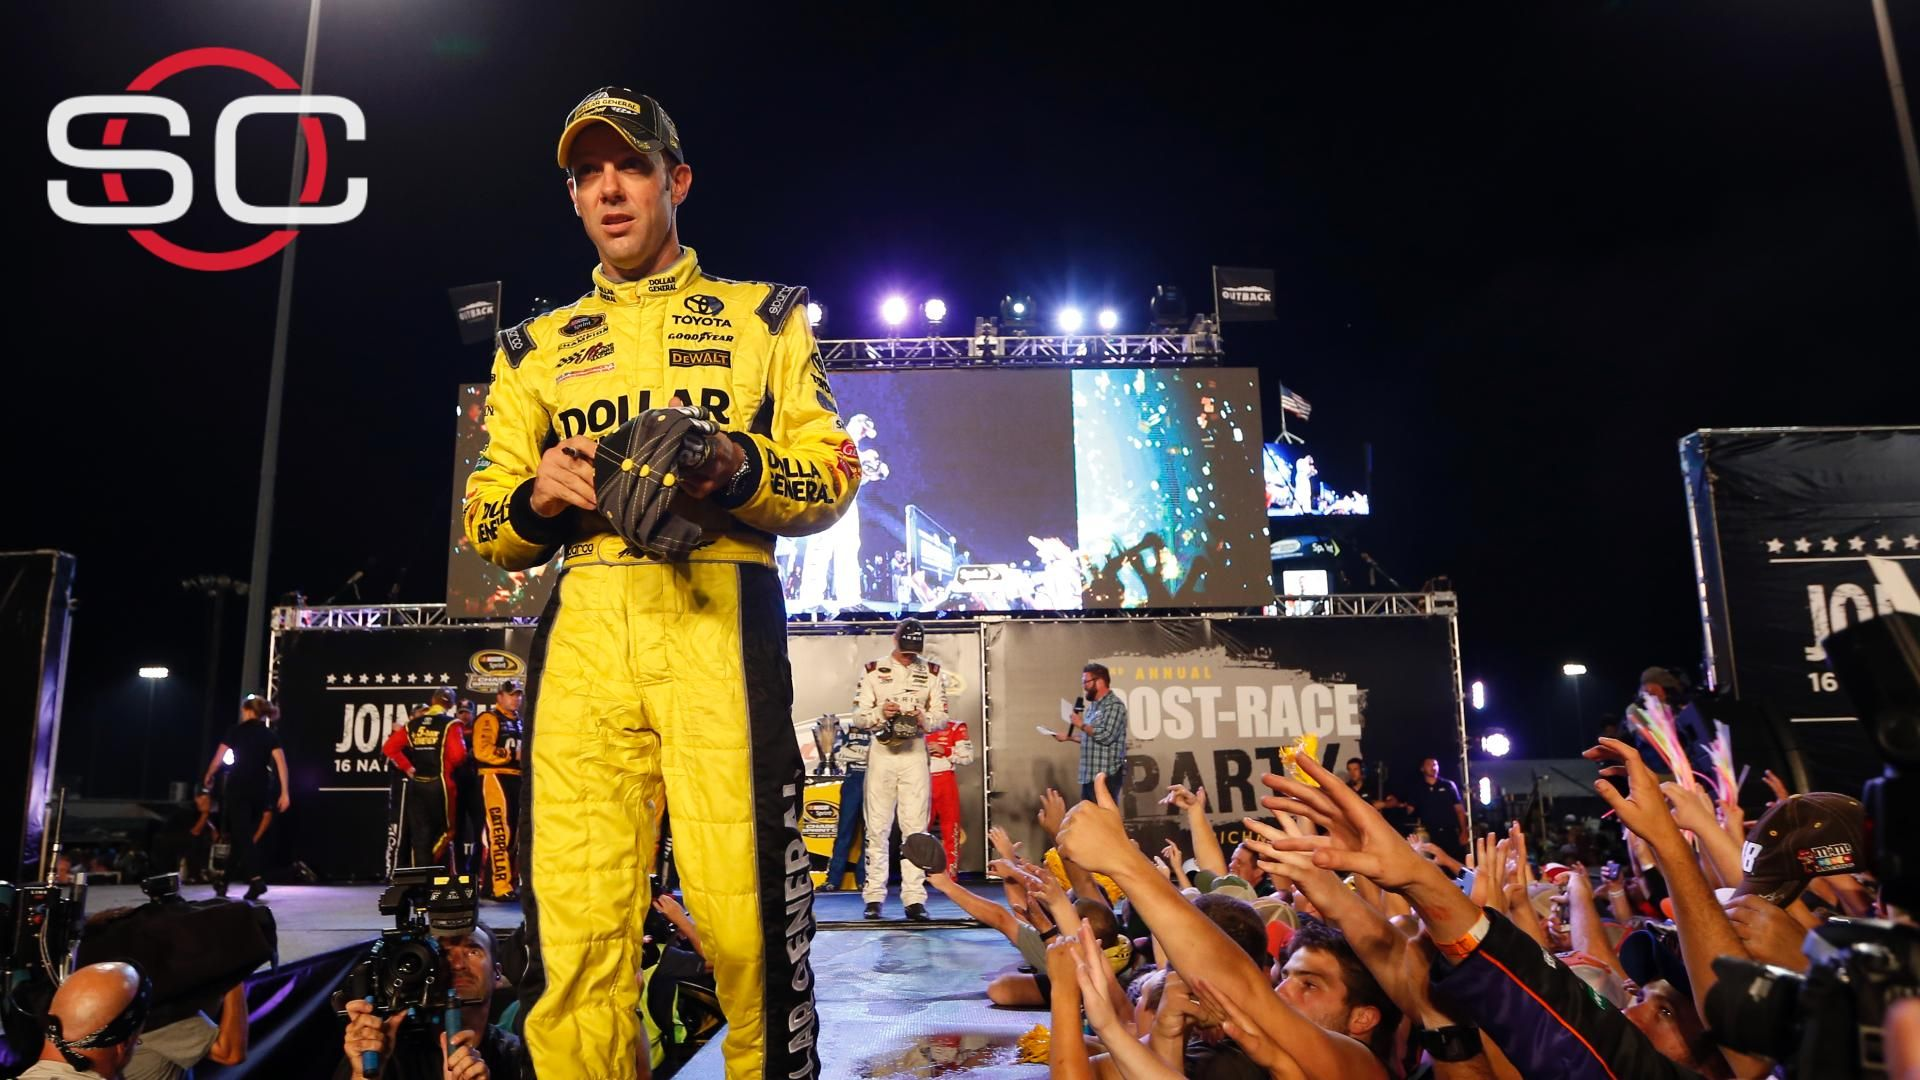 Kenseth calls Logano a liar over spin at Kansas